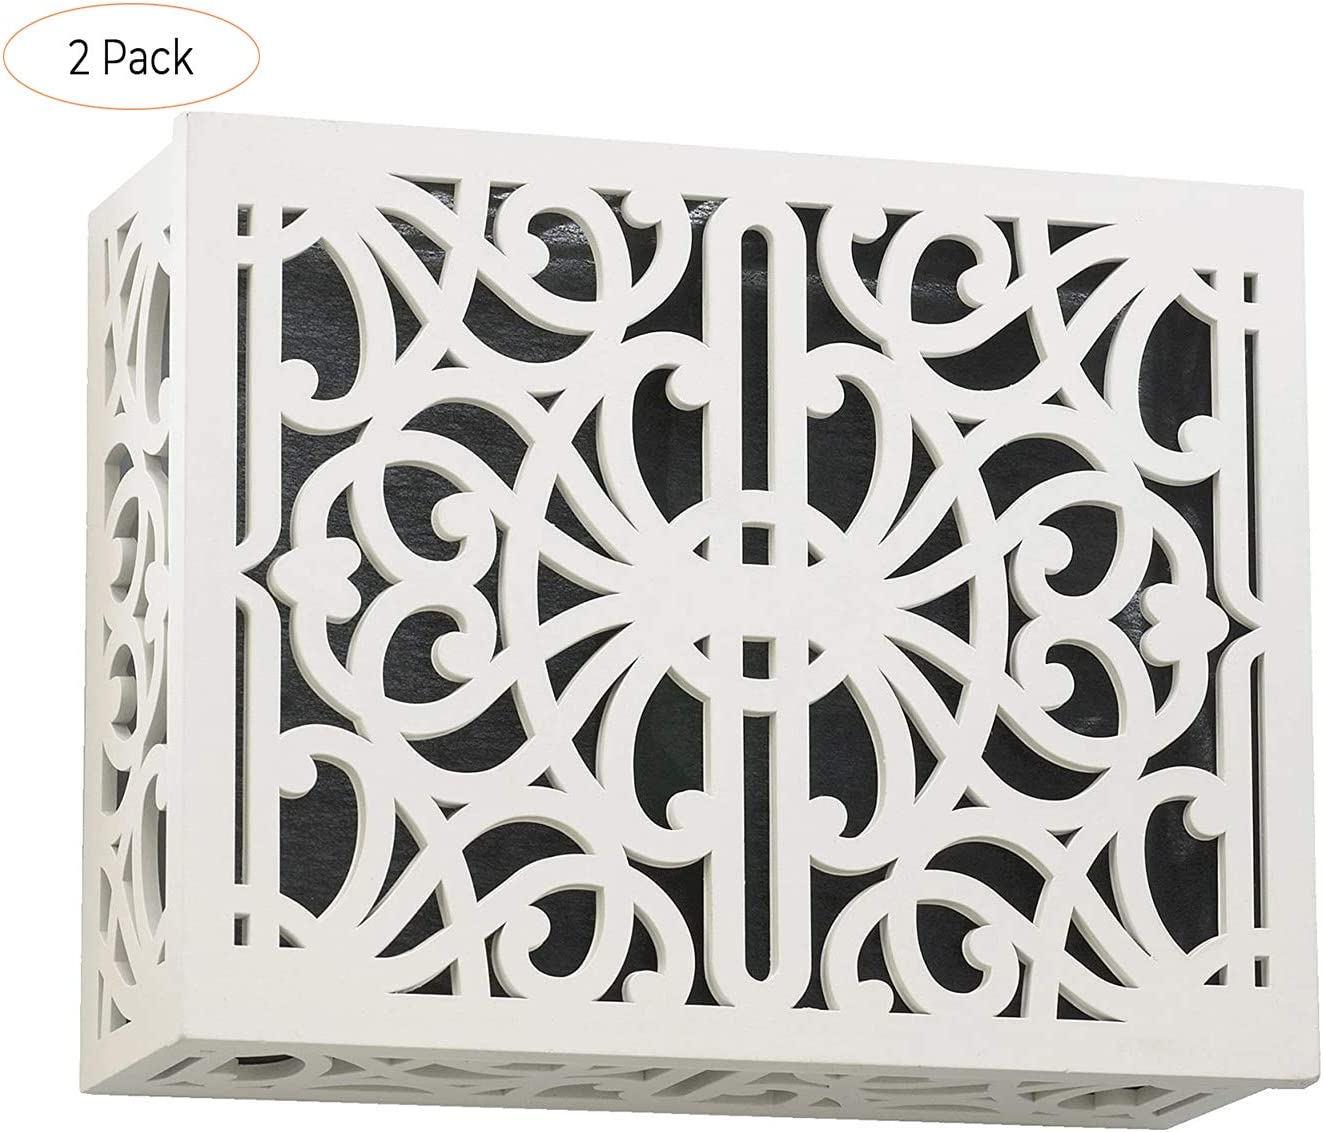 Quorum 7-115-08 Accessory Door Chime Grille Studio White Finish Product ID: 190808037008 Four Pack